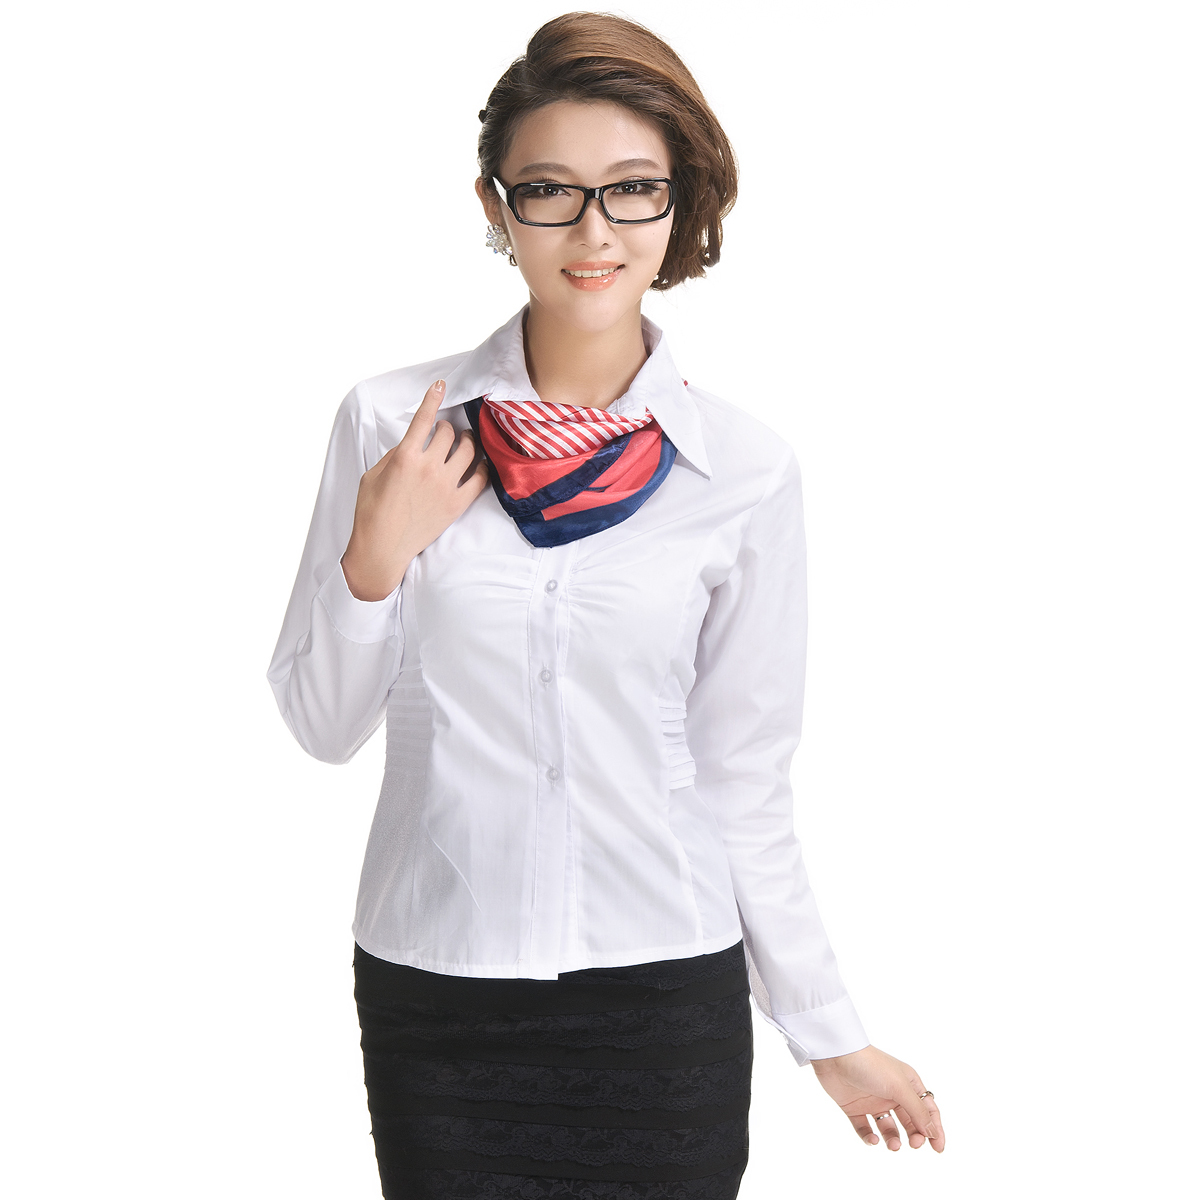 Cy001 long-sleeve slim shirt work wear women's white shirt OL outfit ...